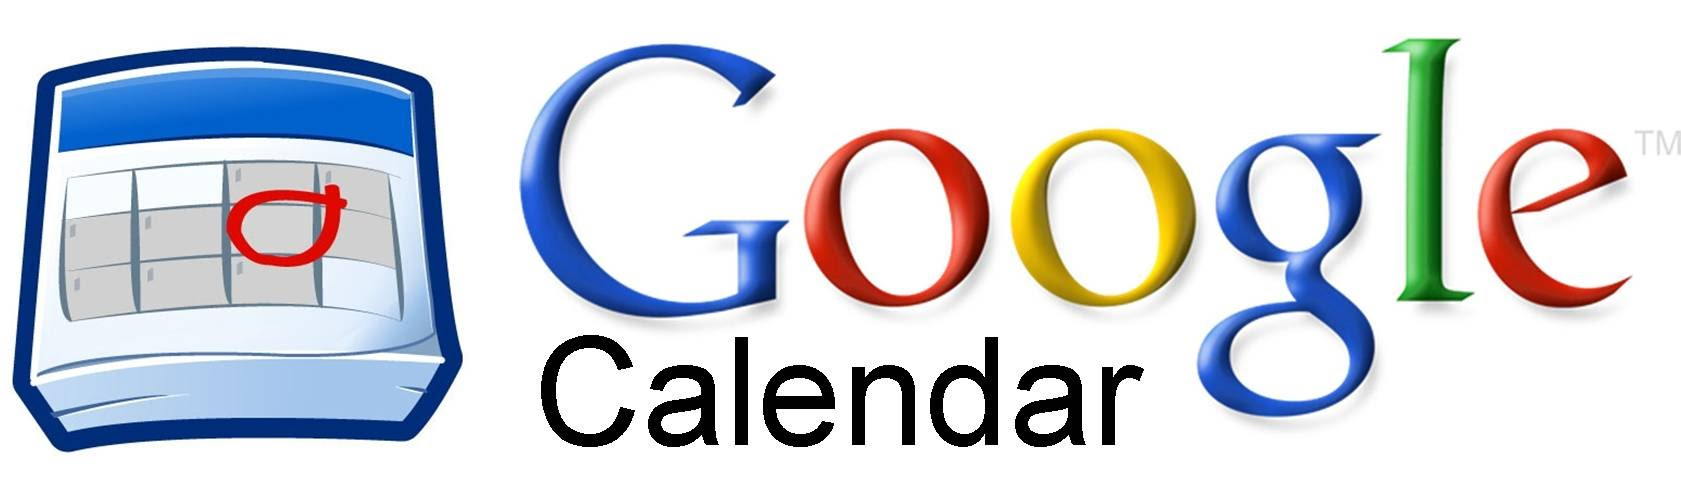 https://sites.google.com/site/mrbalcom/connectingwithparents/google-calendar_logo.jpg